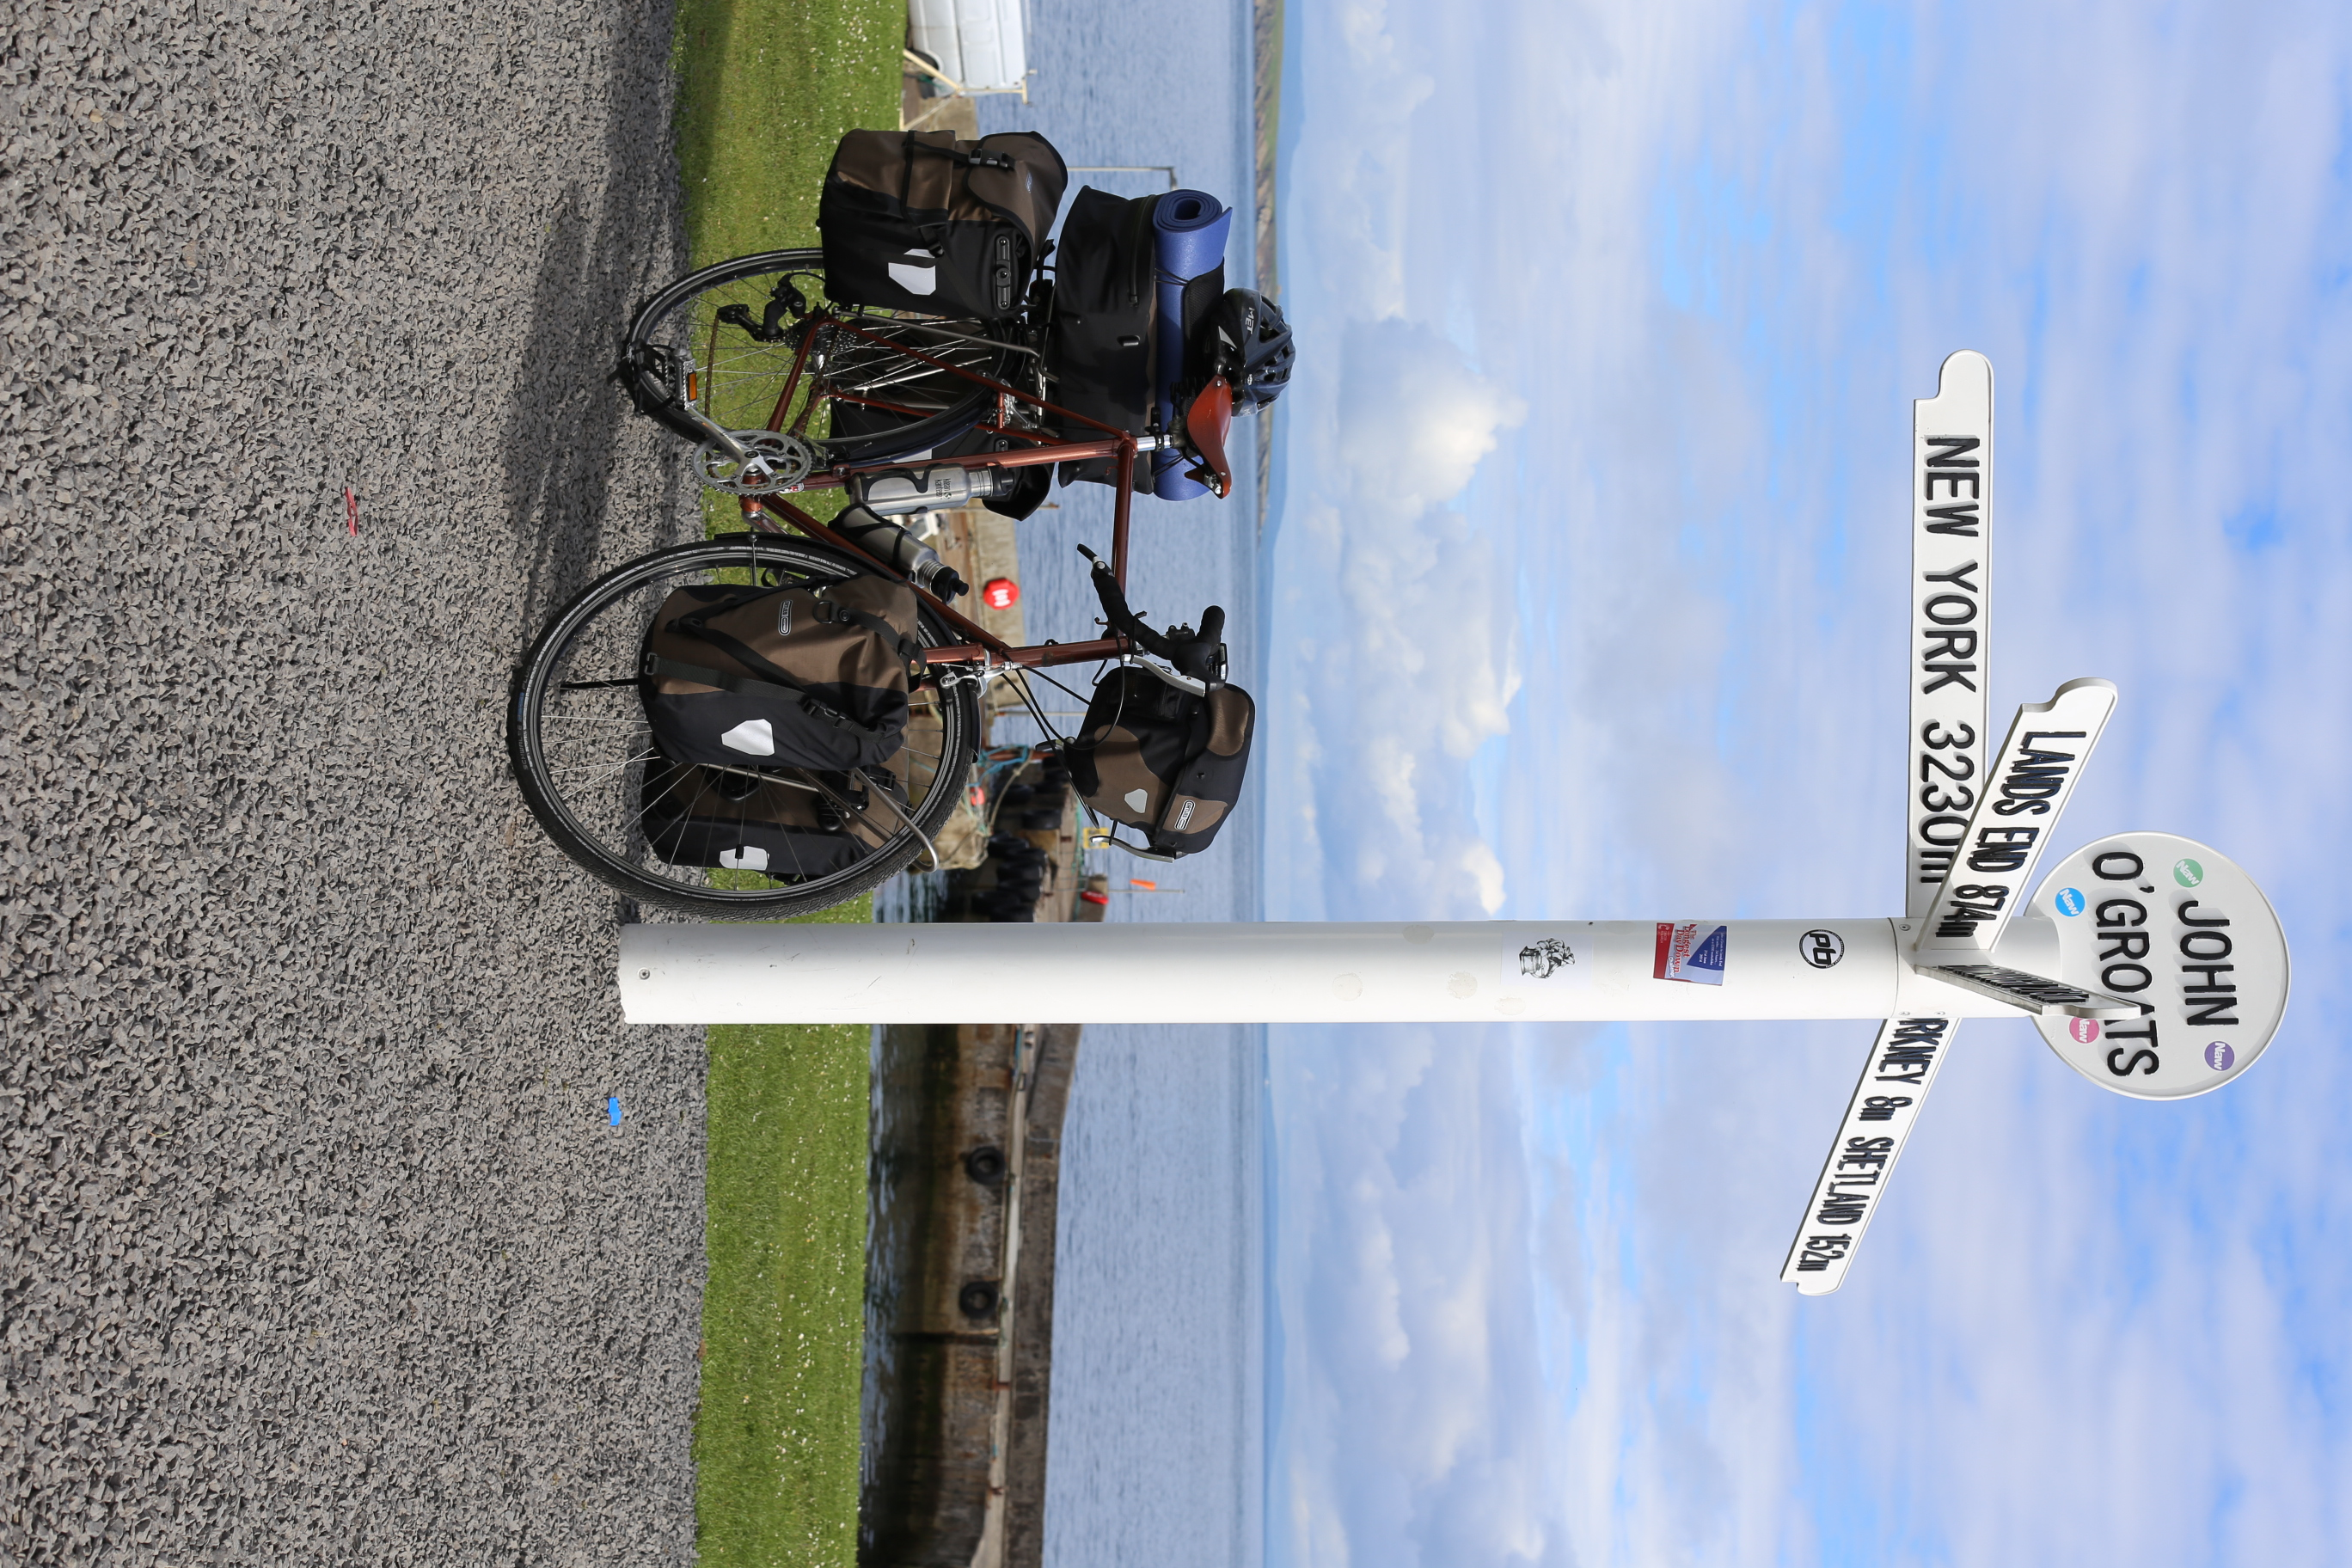 John O'Groats, Scotland, lejog, John O'Groats to Lands End, cycling, ouring bike, touring bikes, bike gear, adventure cycling, ride, bikepacking, cycle routes, touring bicycles, road bicycle, cycling holidays, bike tour, road cycling, bike trails,